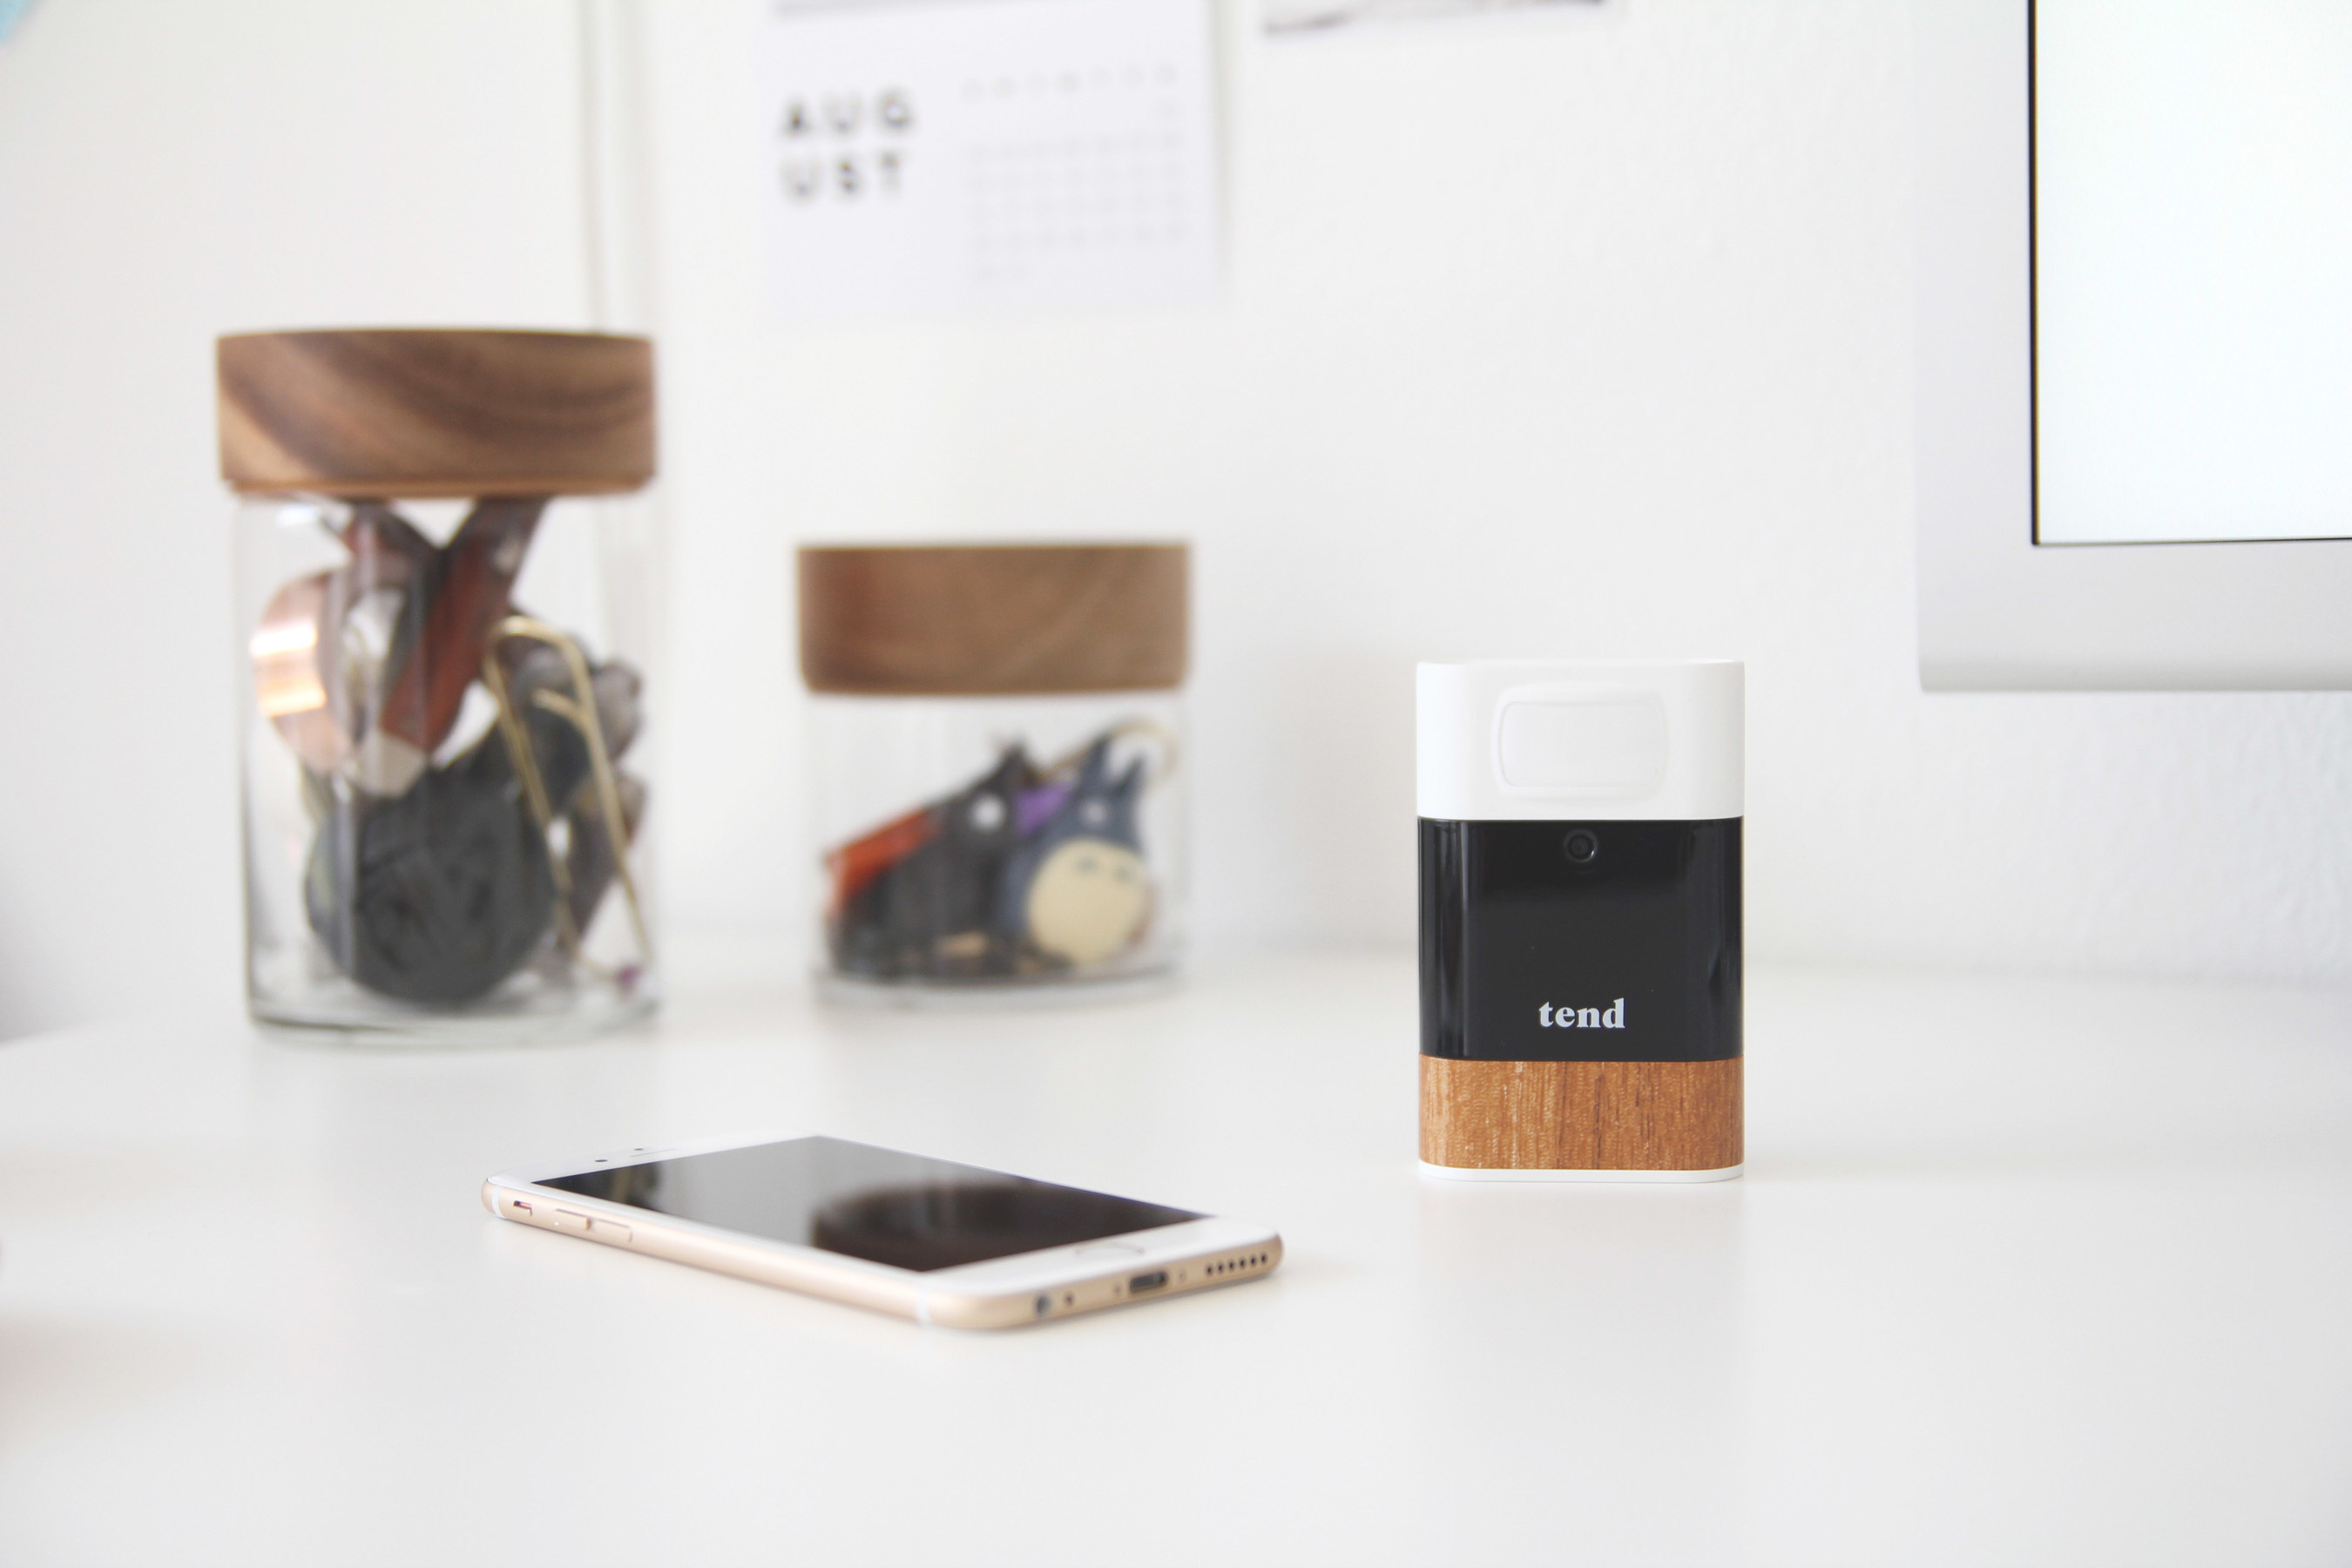 Tend launches Tend Secure, a smart security product that goes where you go